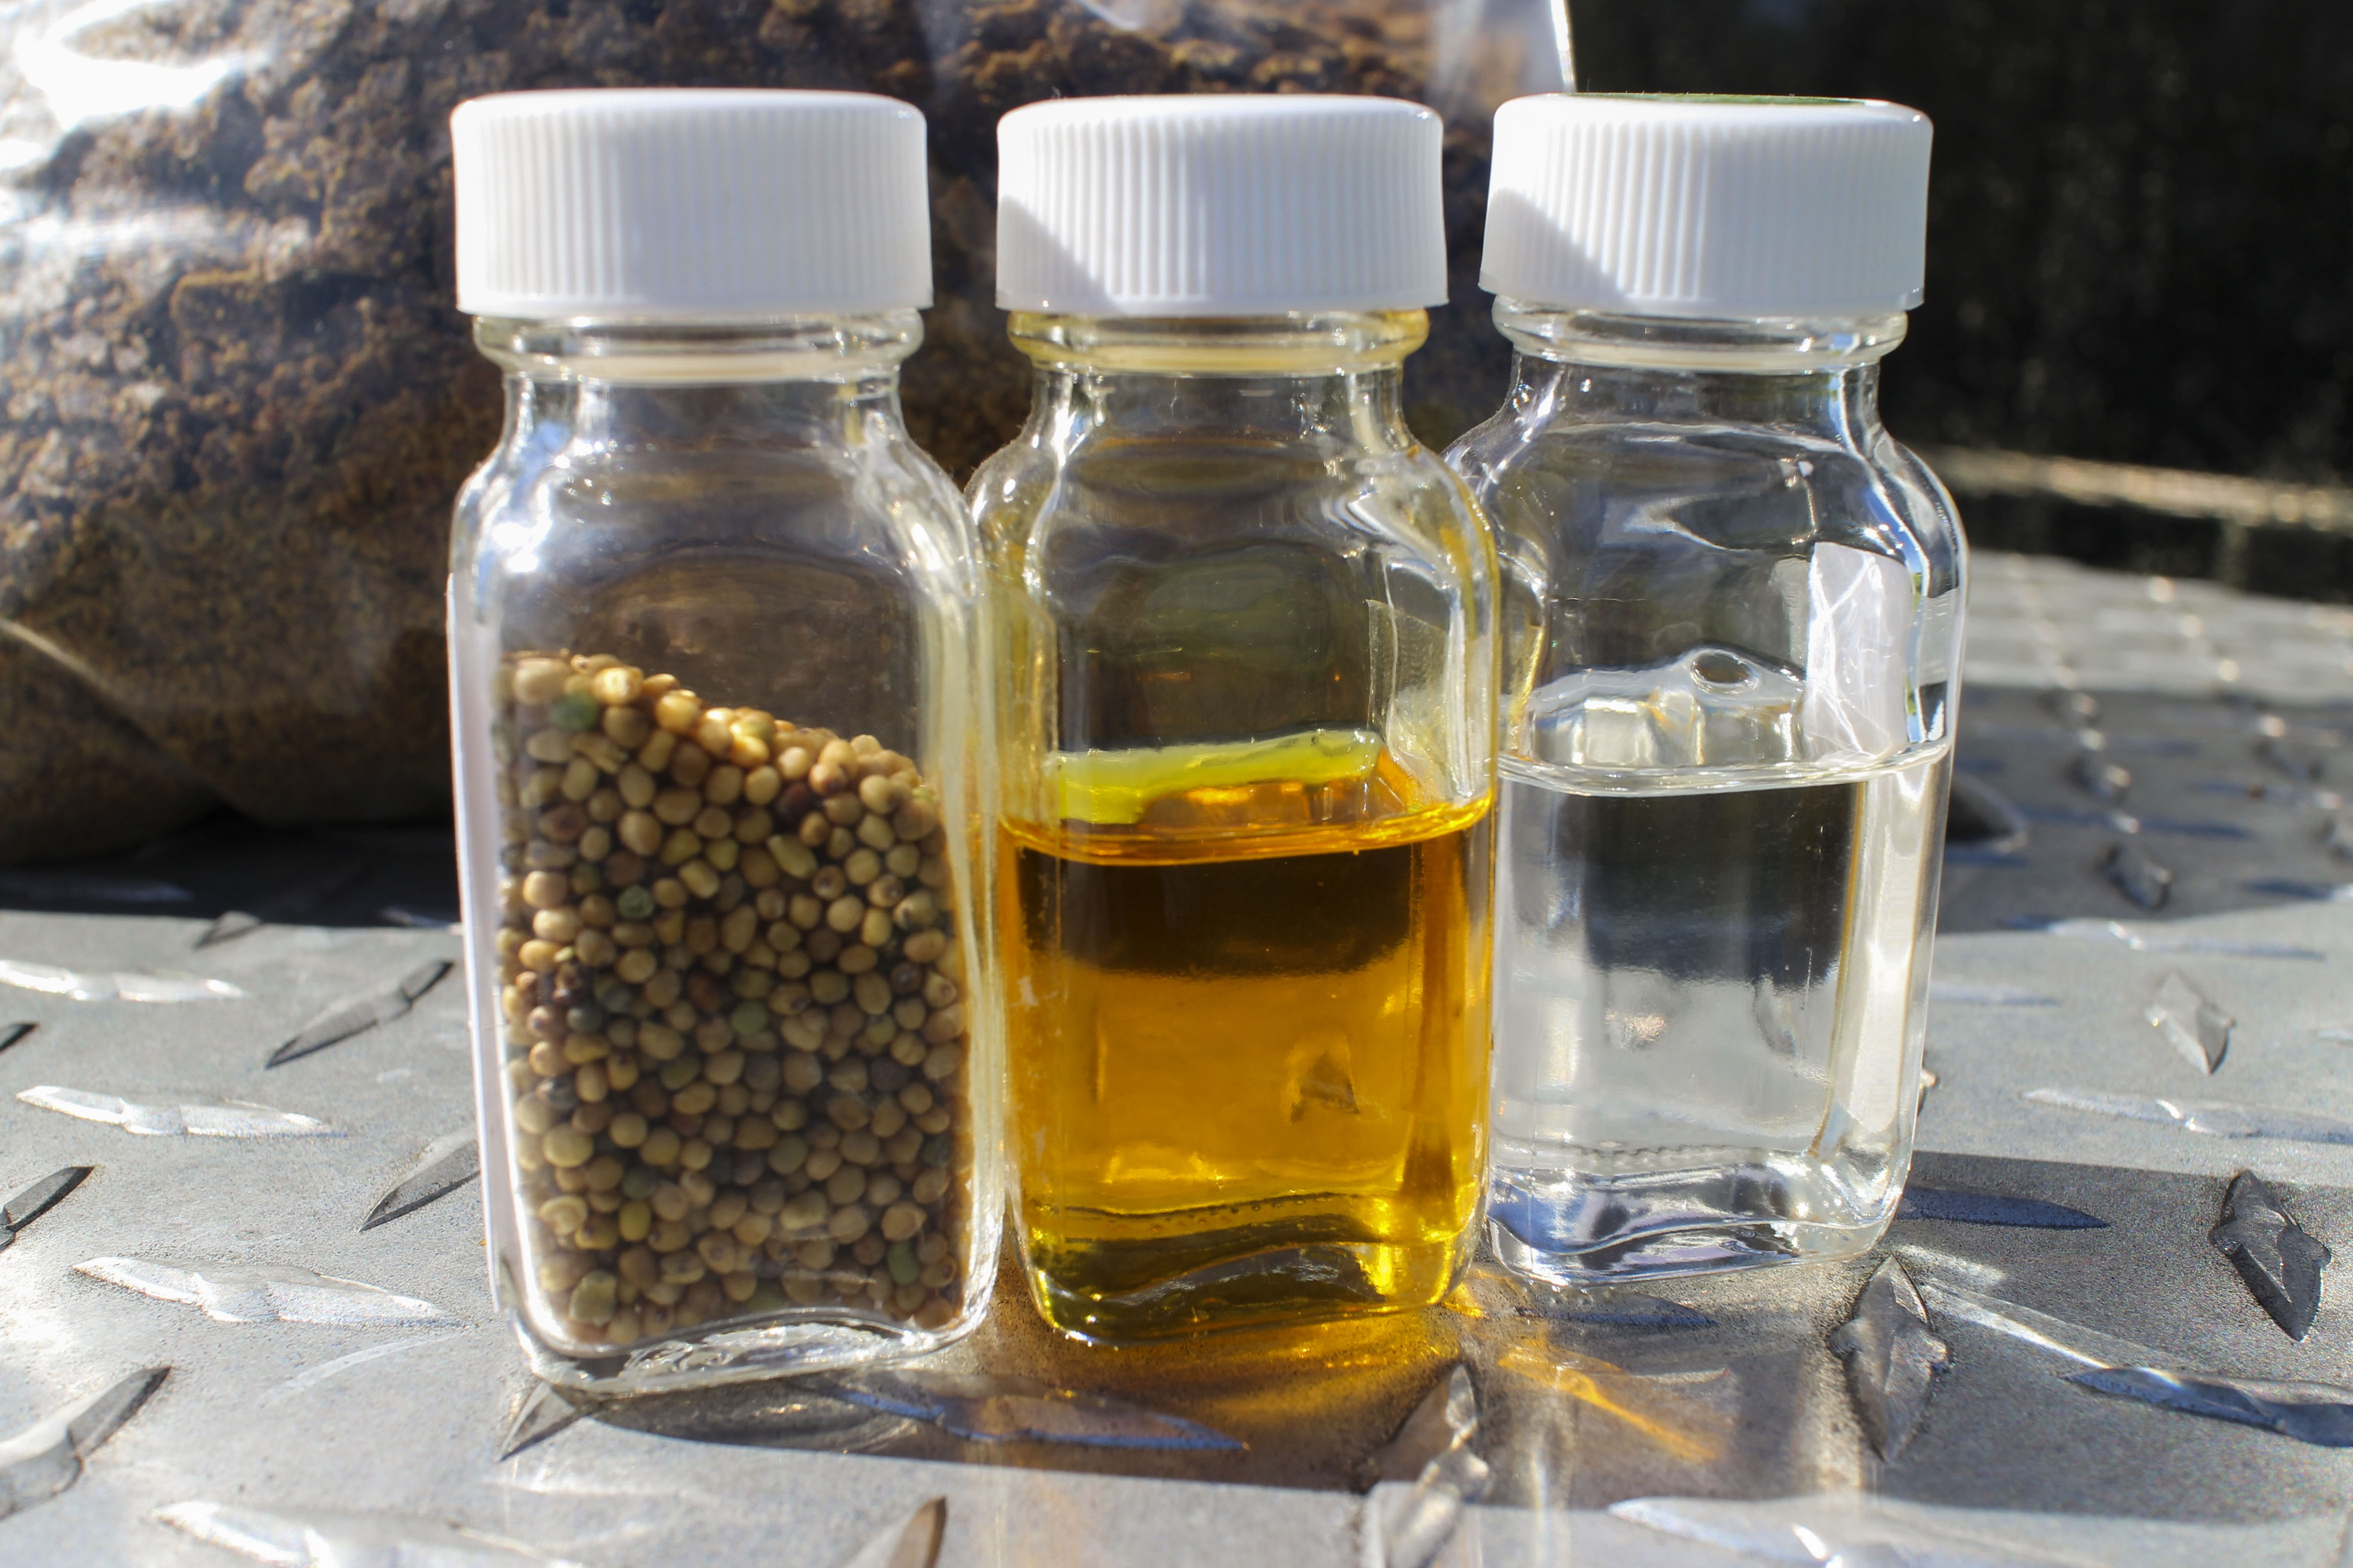 Mustard seeds in varying stages of biofuel production. Credit: UF/IFAS